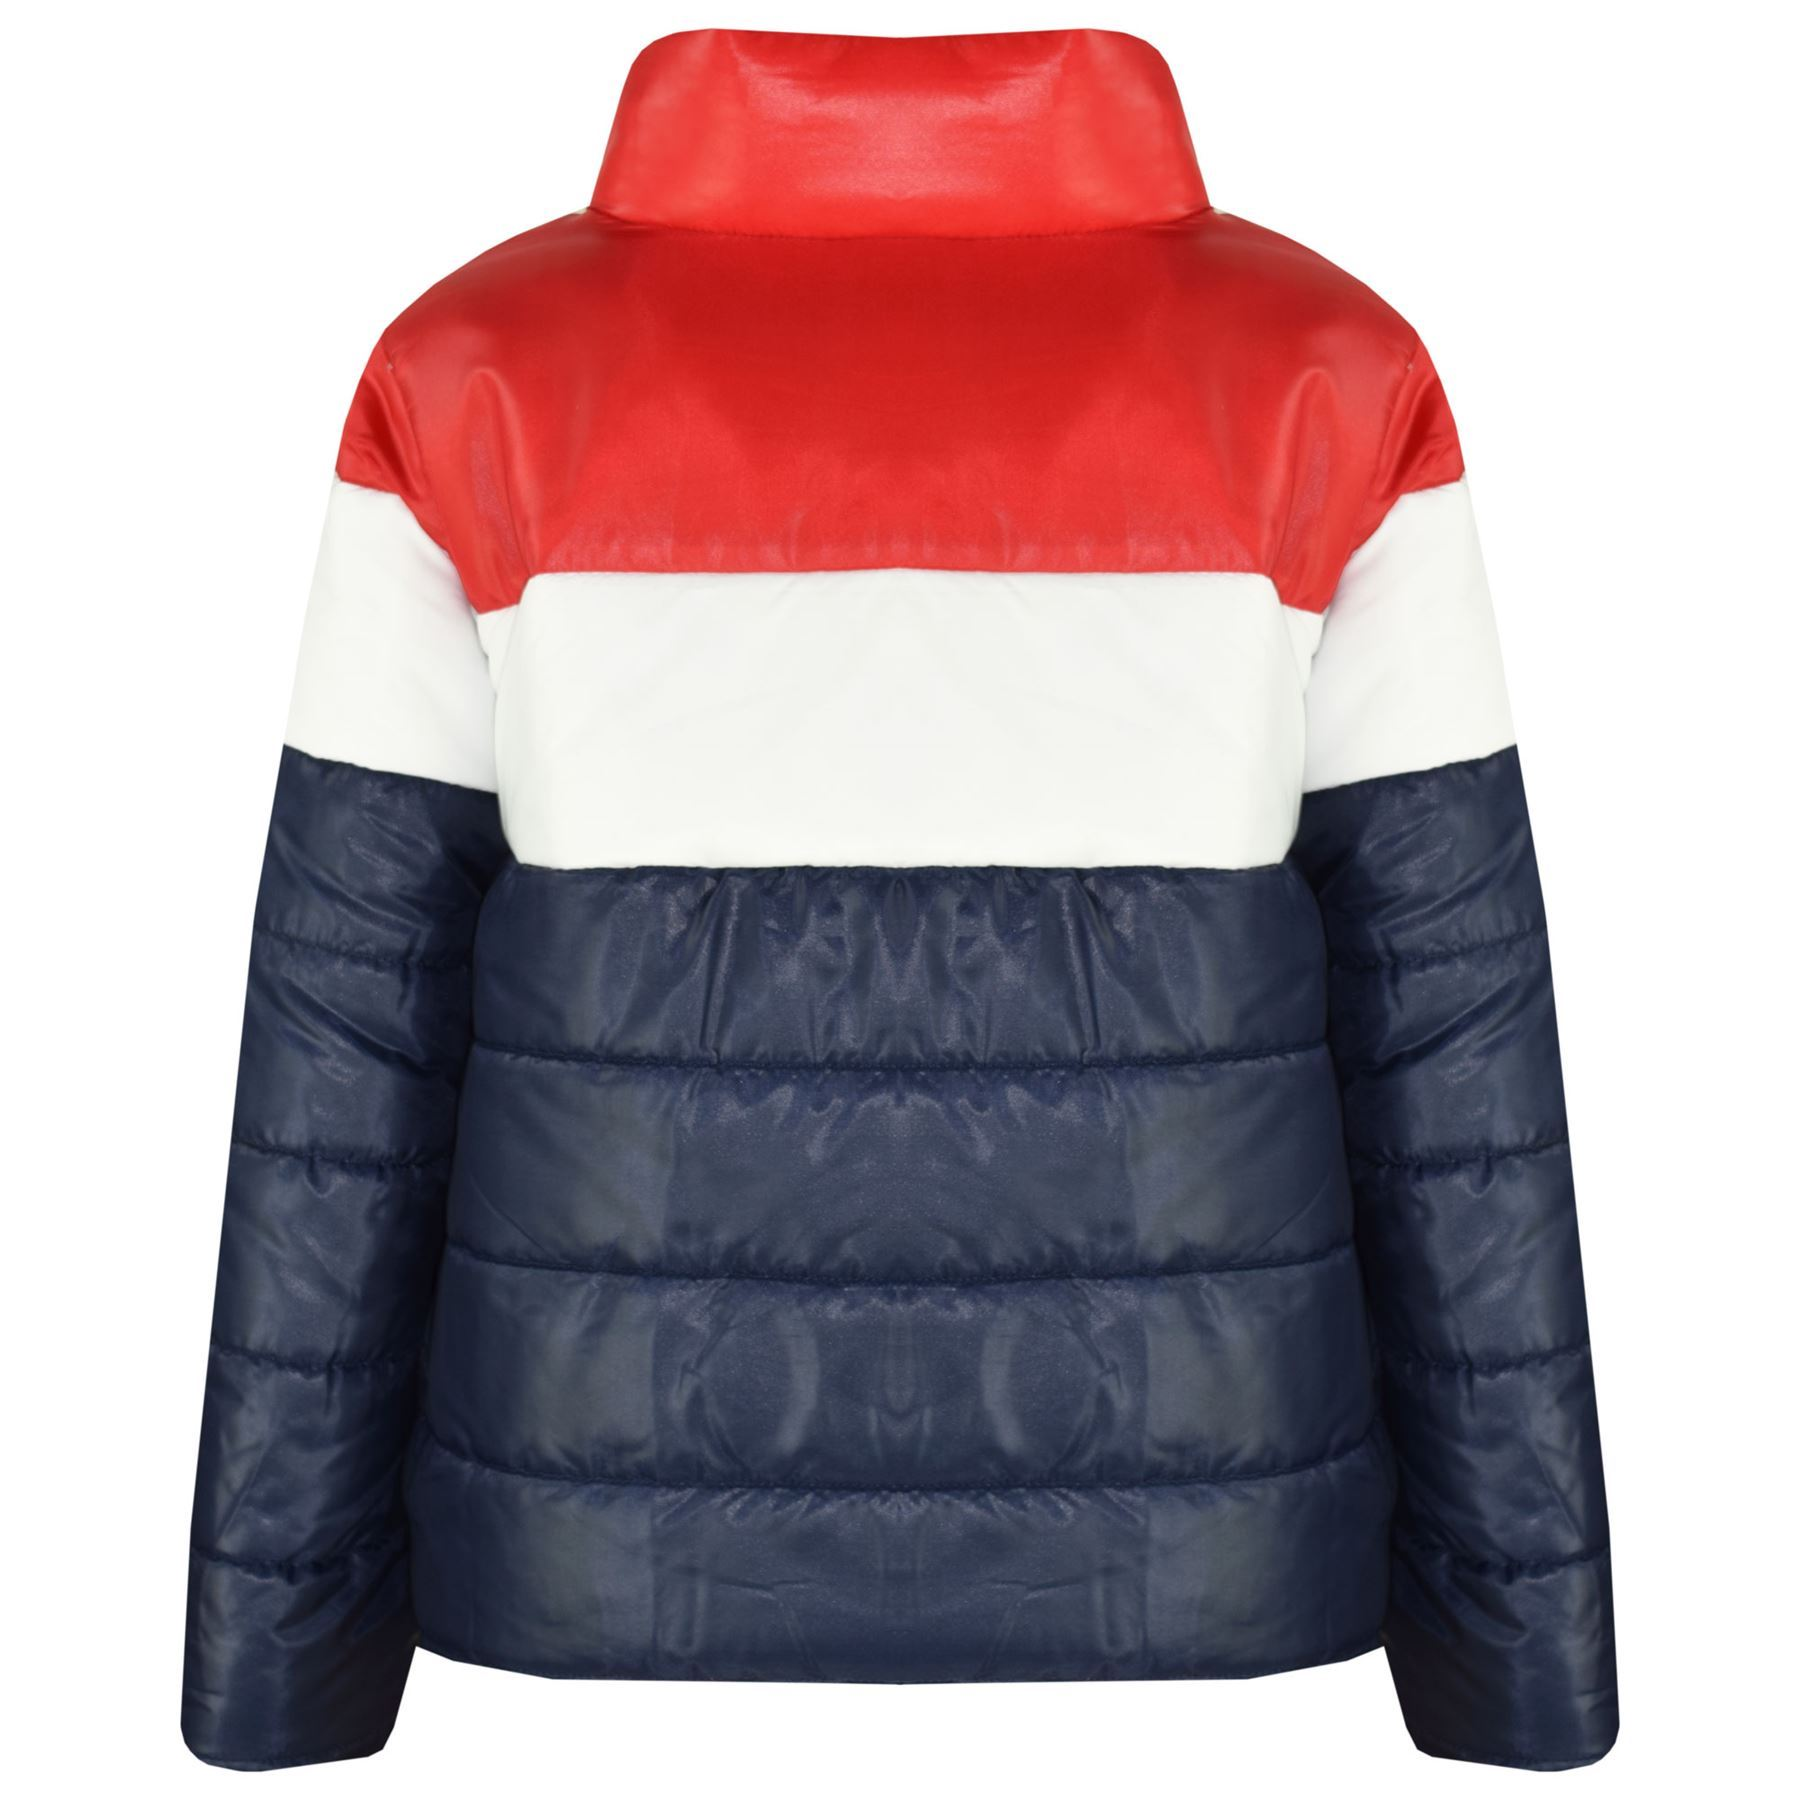 120c253f9 Details about Kids Girls Boys Designer Contrast Panel Hooded Jackets Padded  Quilted Warm Coats